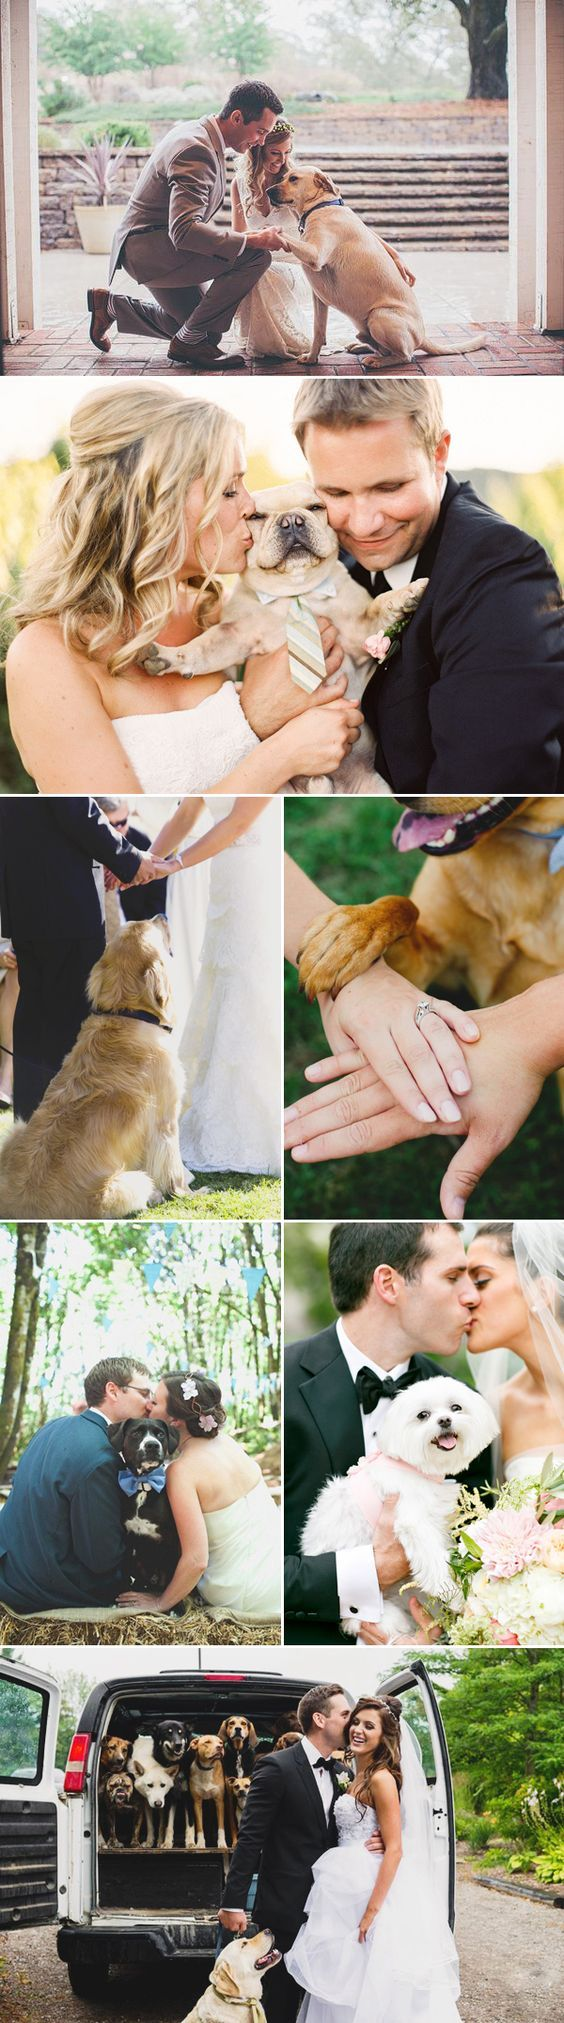 28 Precious Wedding Moments with Dogs and Their Promises!